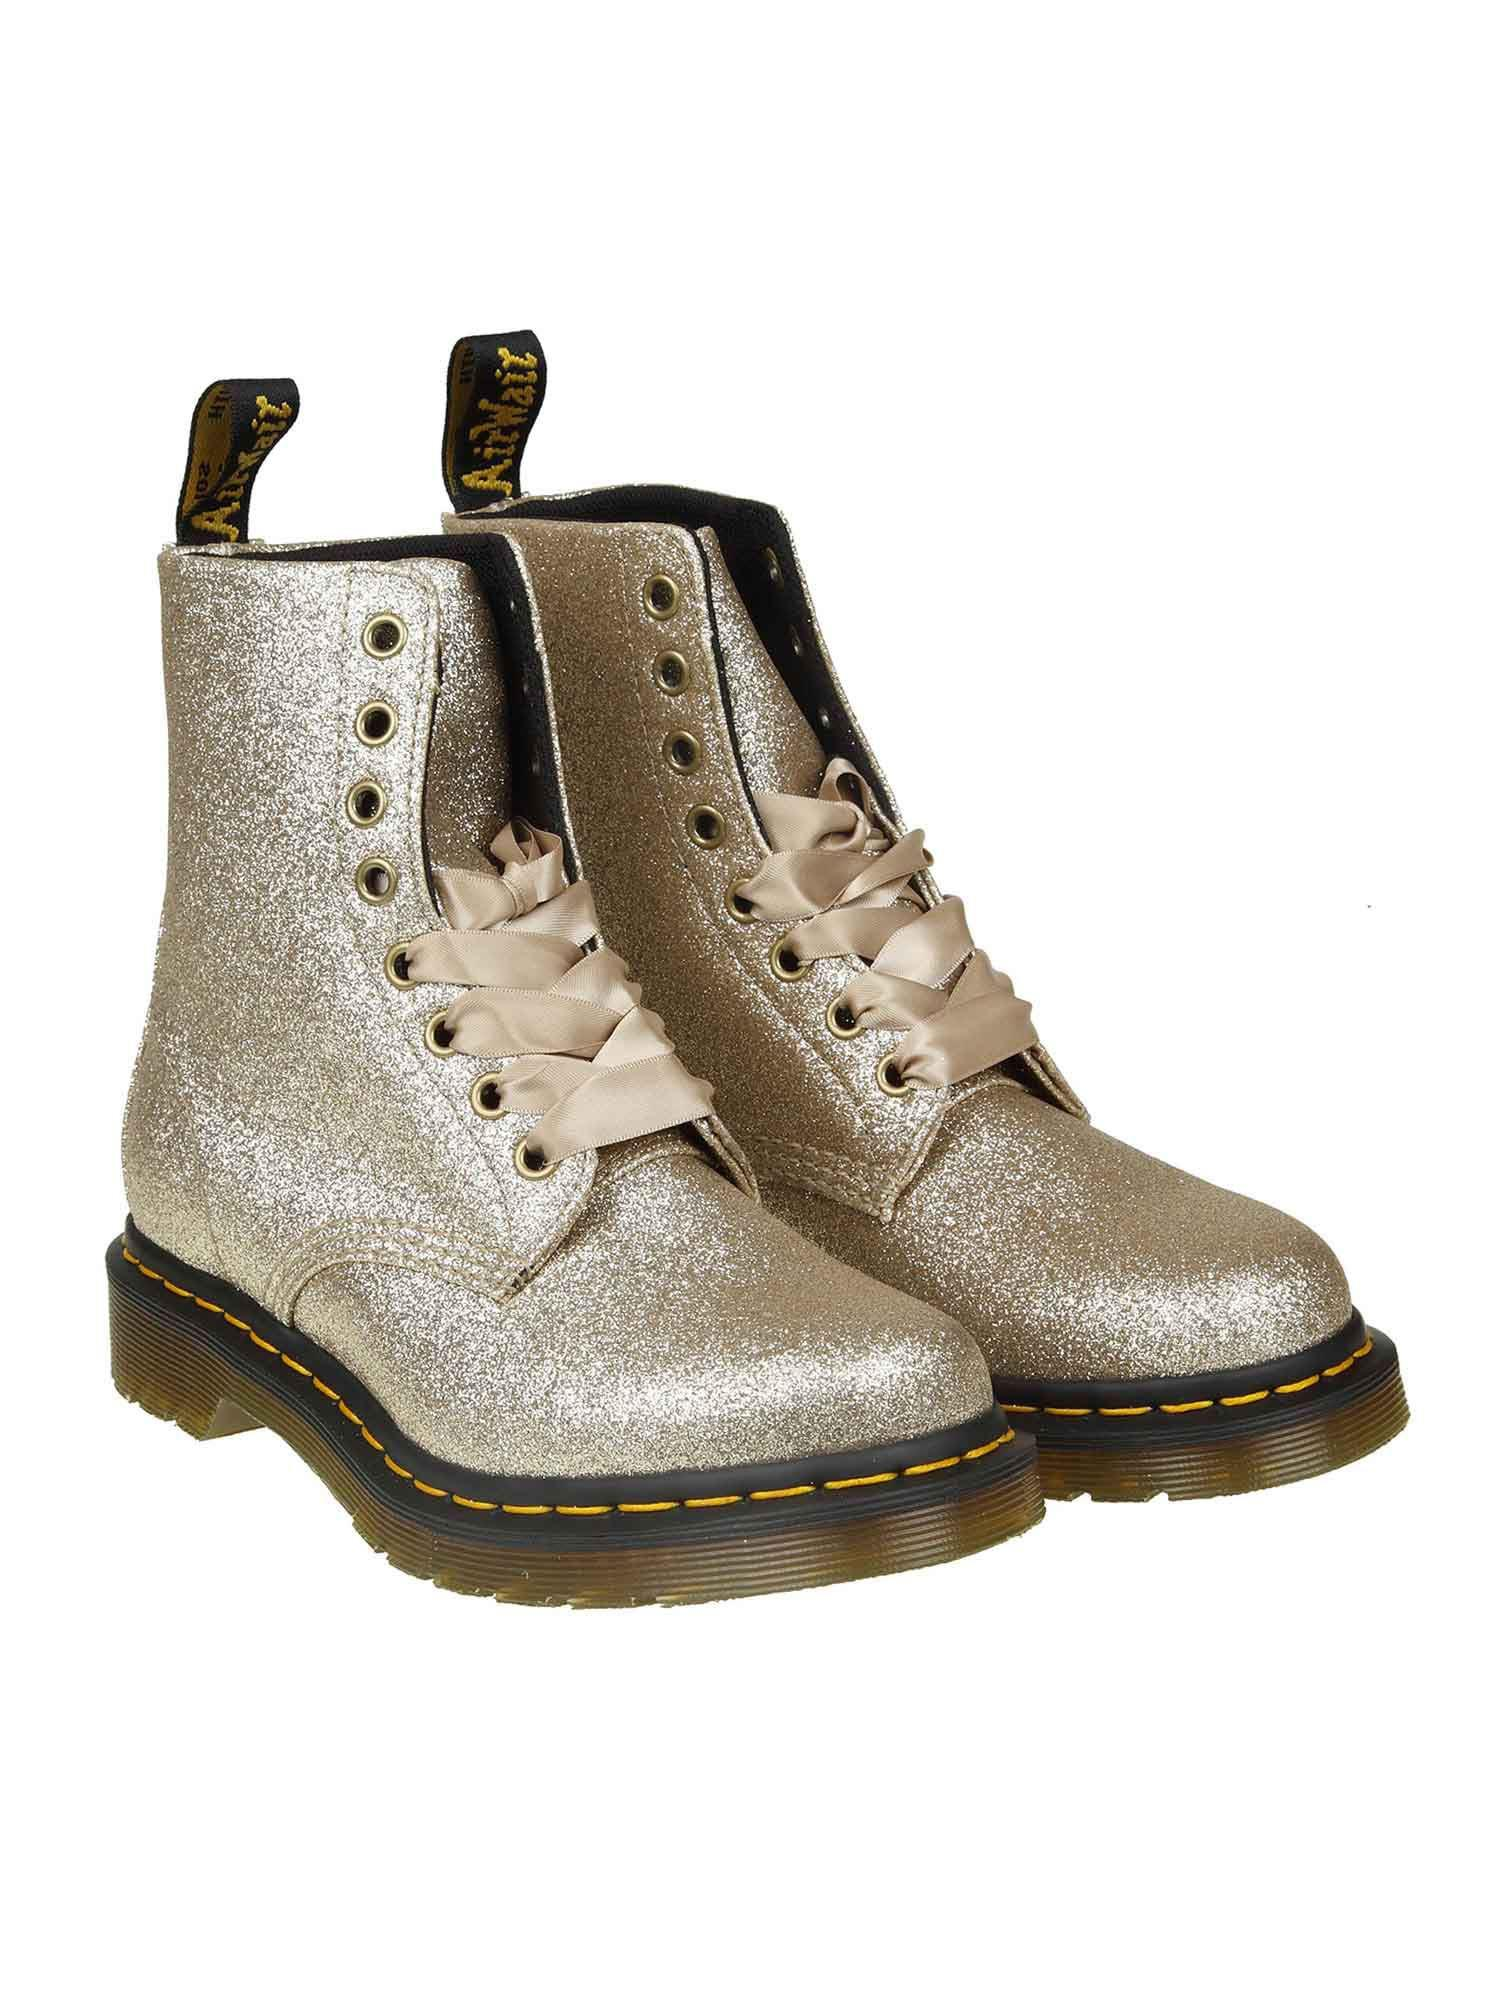 Dr. Martens Leather Boots For Women